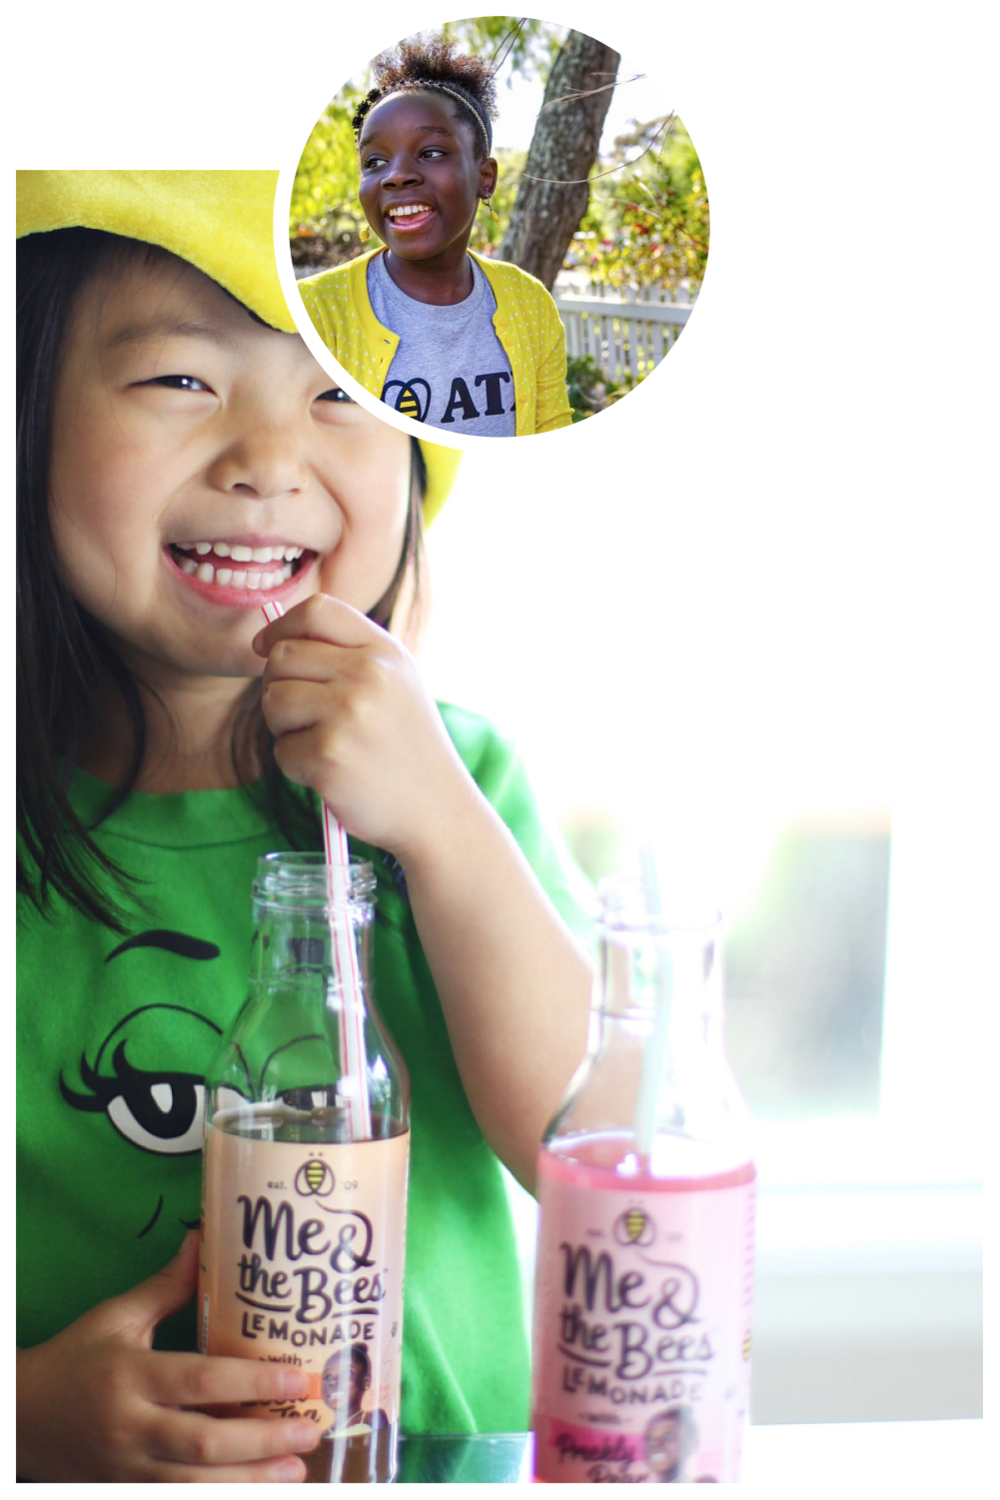 Me & the Bees Lemonade by Mikaila